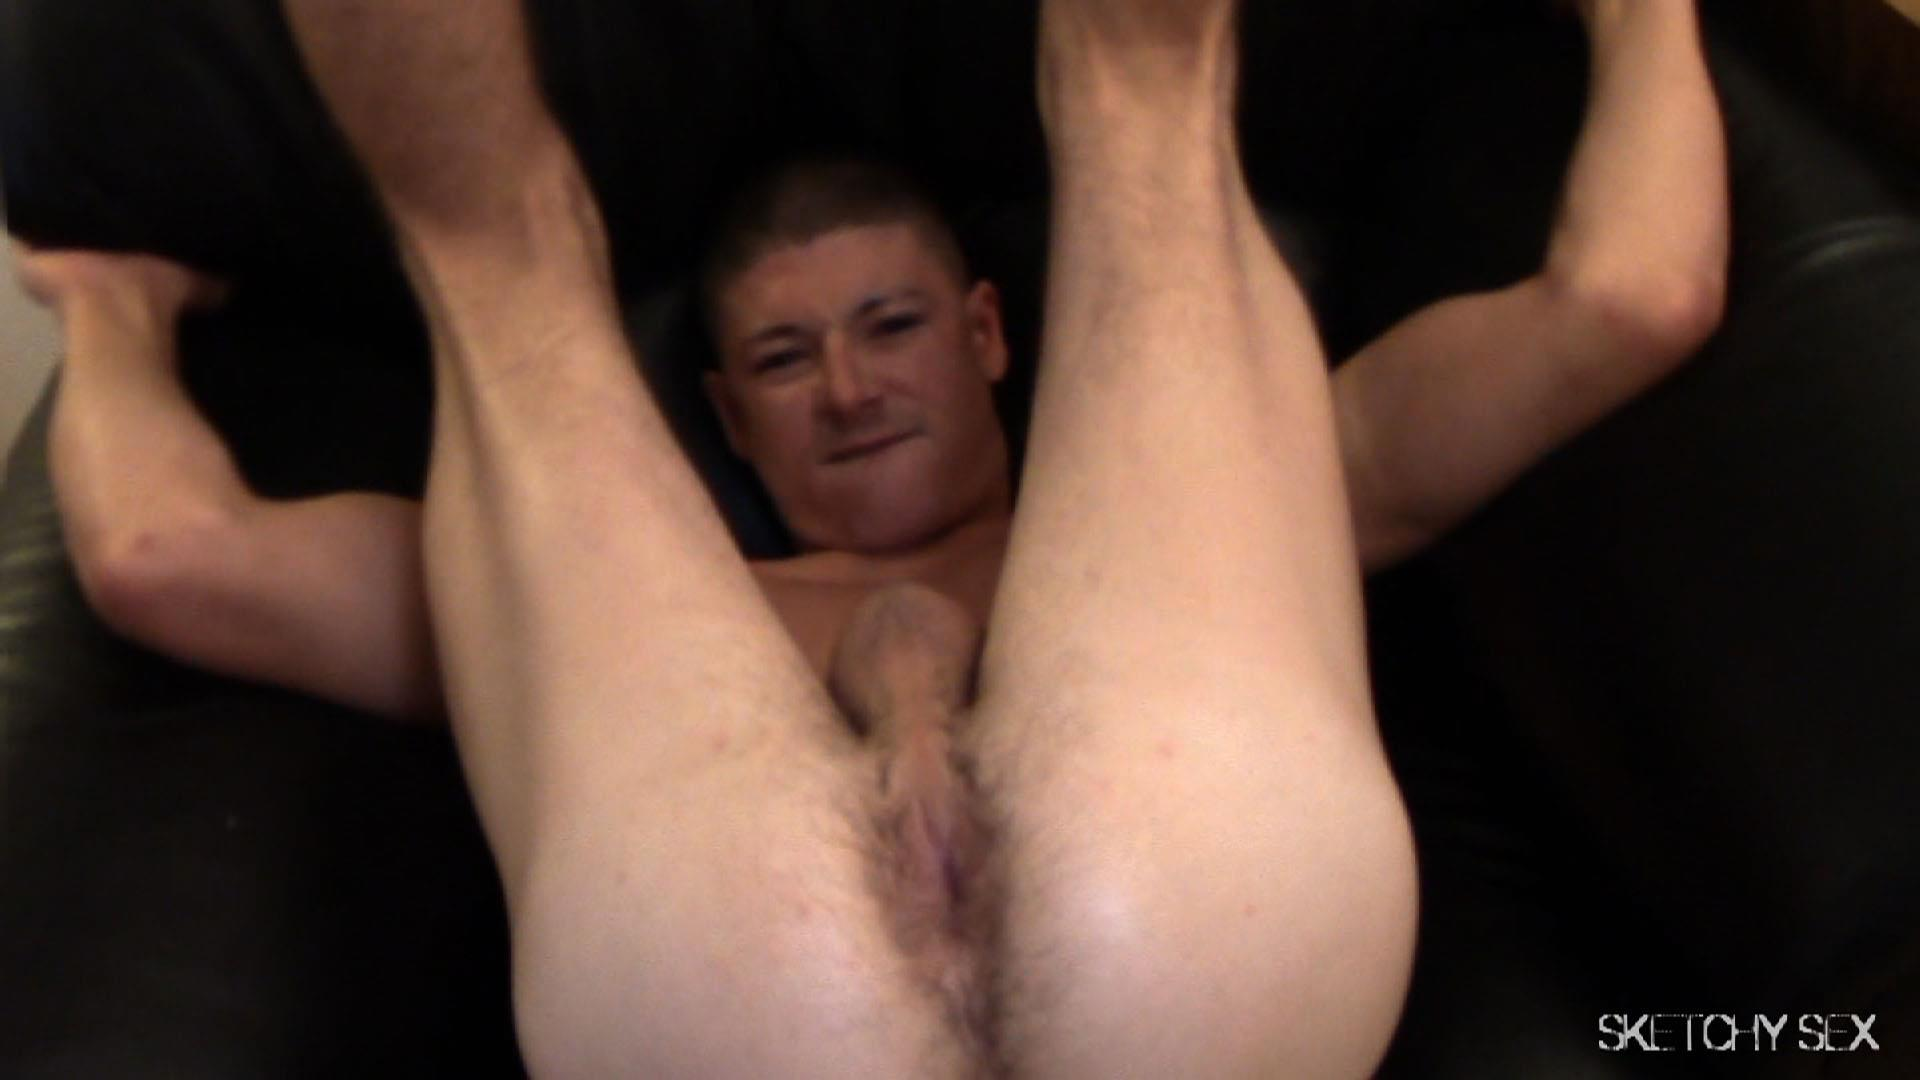 Sketchy-Sex-Nate-Getting-Fucked-Bareback-By-A-10-Inch-Craigslist-Cock-Amateur-Gay-Porn-03 Taking A 10